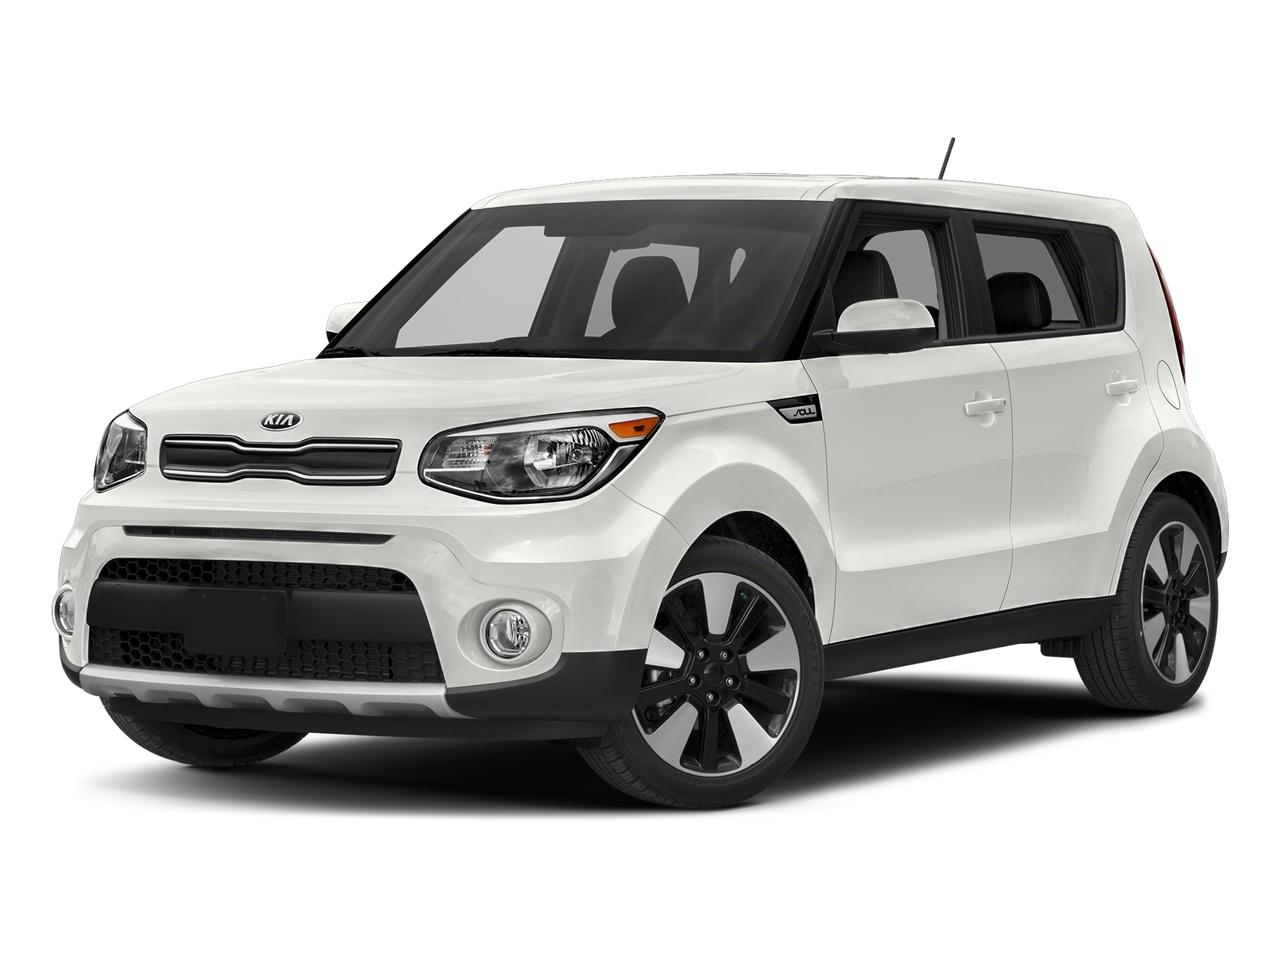 2018 Kia Soul Vehicle Photo in Tucson, AZ 85712